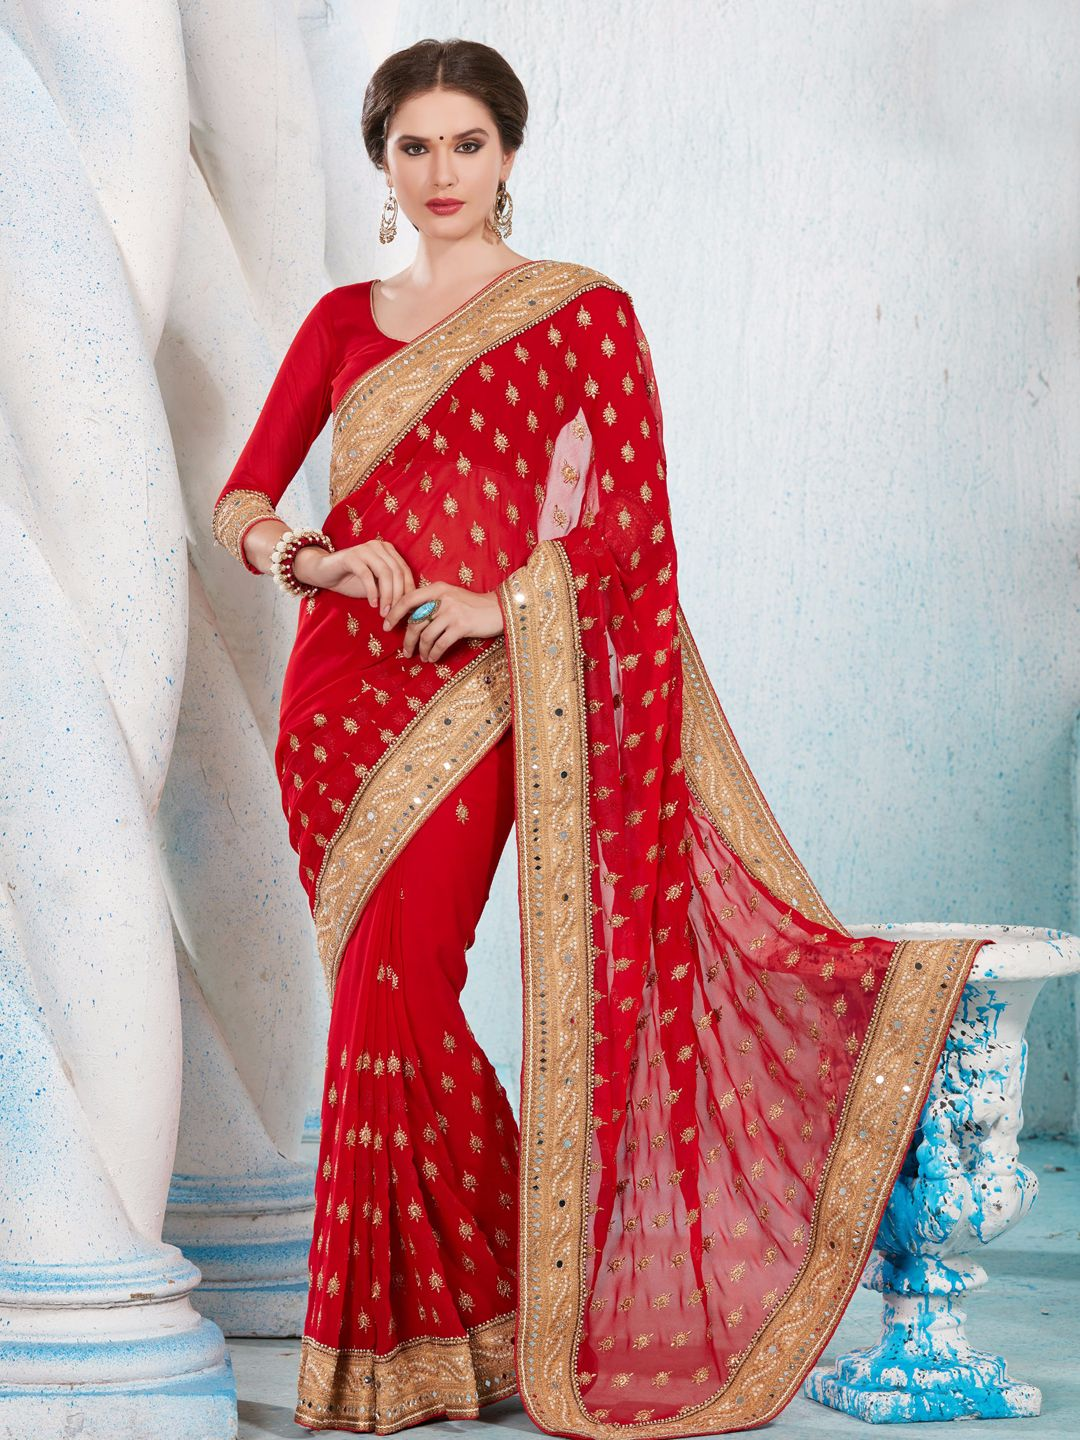 928e0ee0a13 Top 15 Red color sarees you Must Have — G3+ Fashion